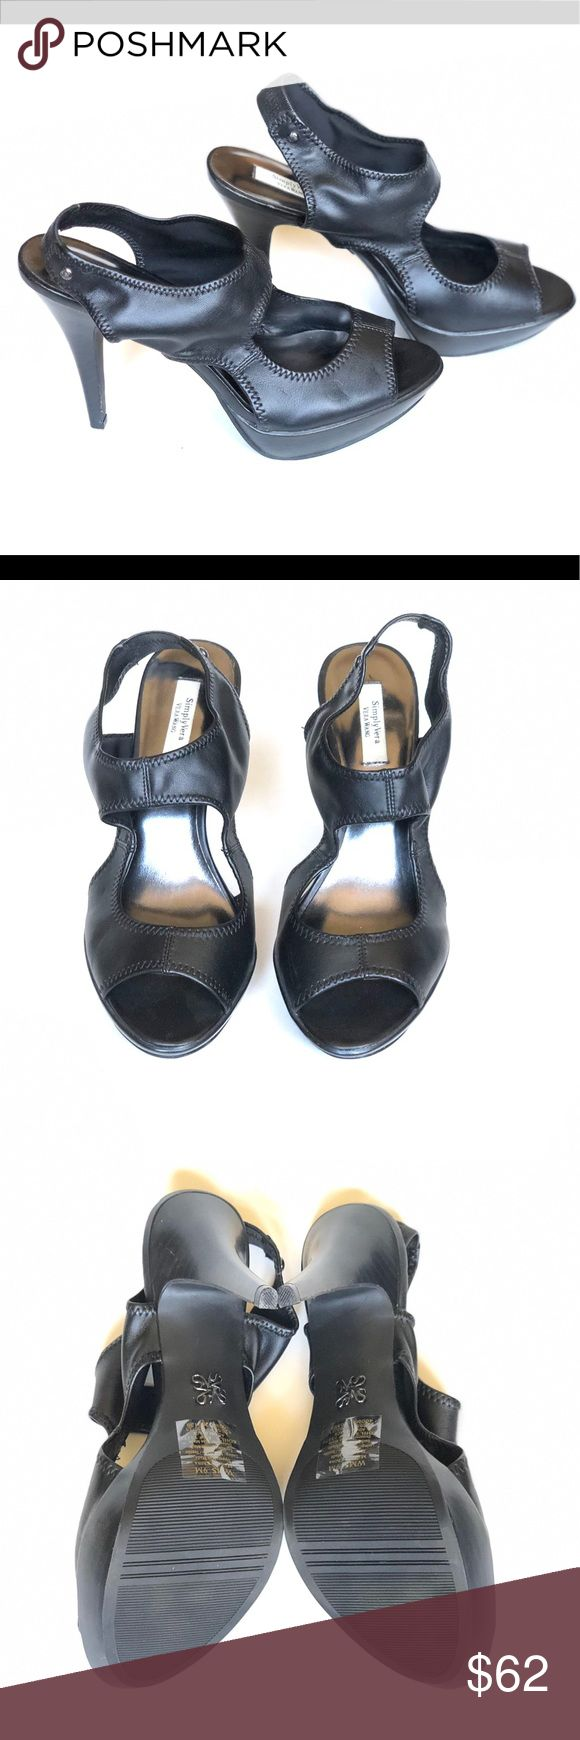 SIMPLY VERA WANG Black High Heels 9M SIMPLY VERA WANG Black High Heels 9M. Heel is 5 inches. Some very minor scrapes on heel. These are in excellent condition. Simply Vera Vera Wang Shoes Heels